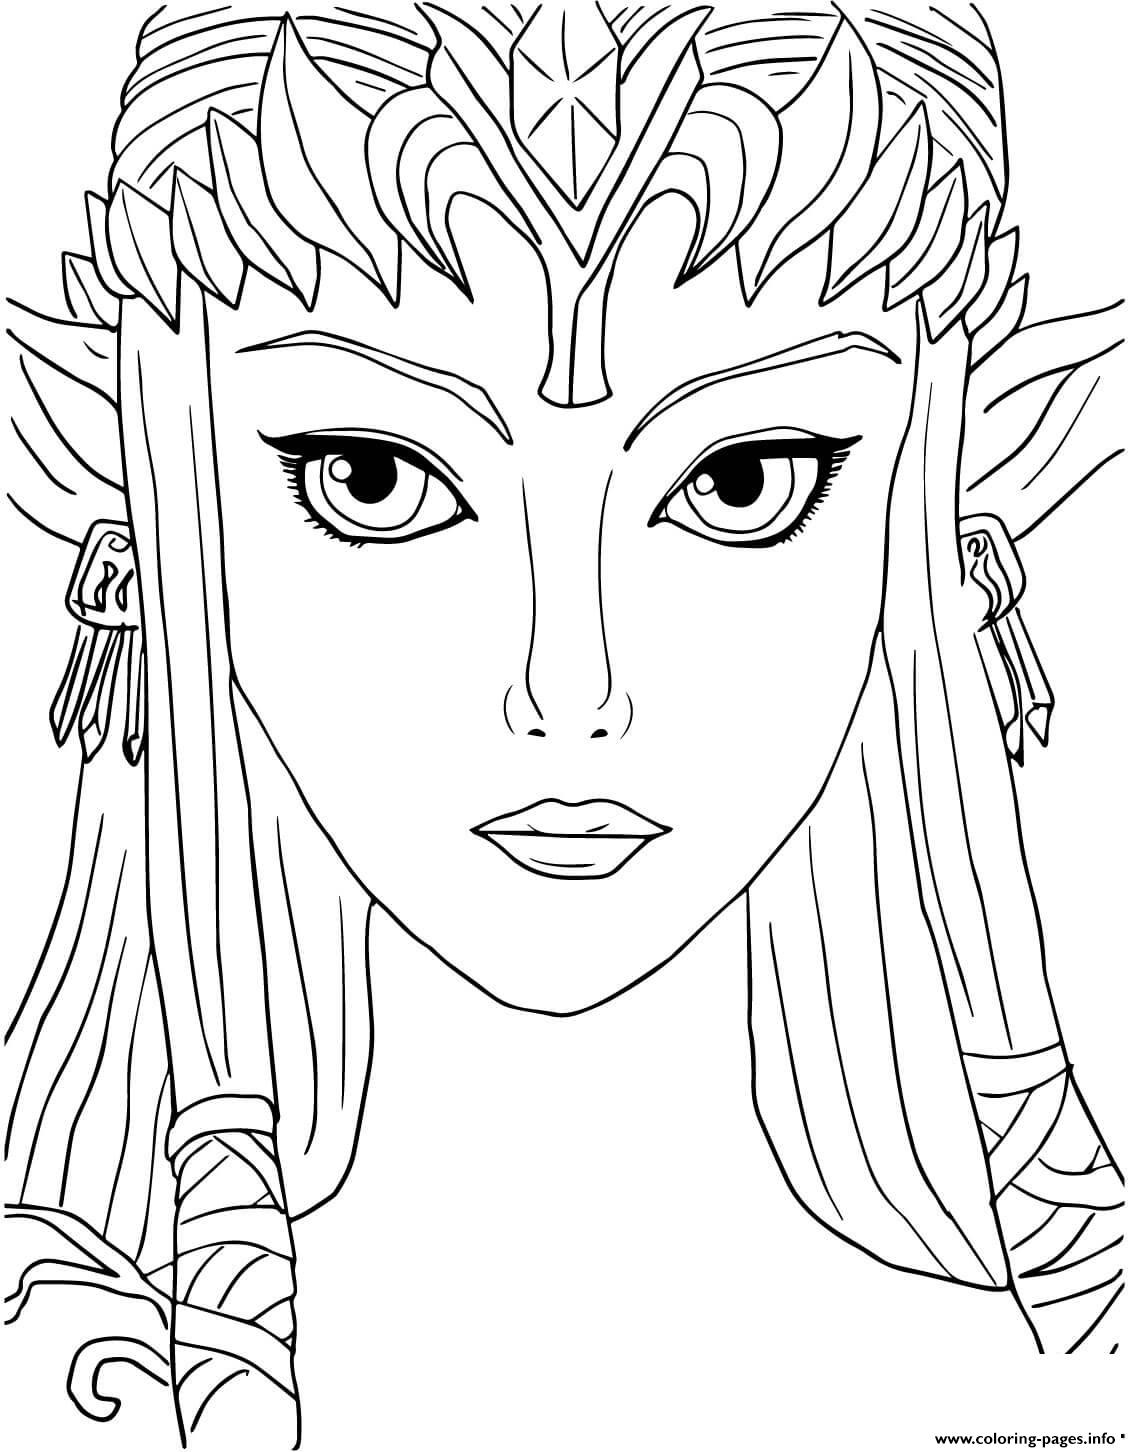 Zelda Twilight Princess Coloring Pages - NEO Coloring